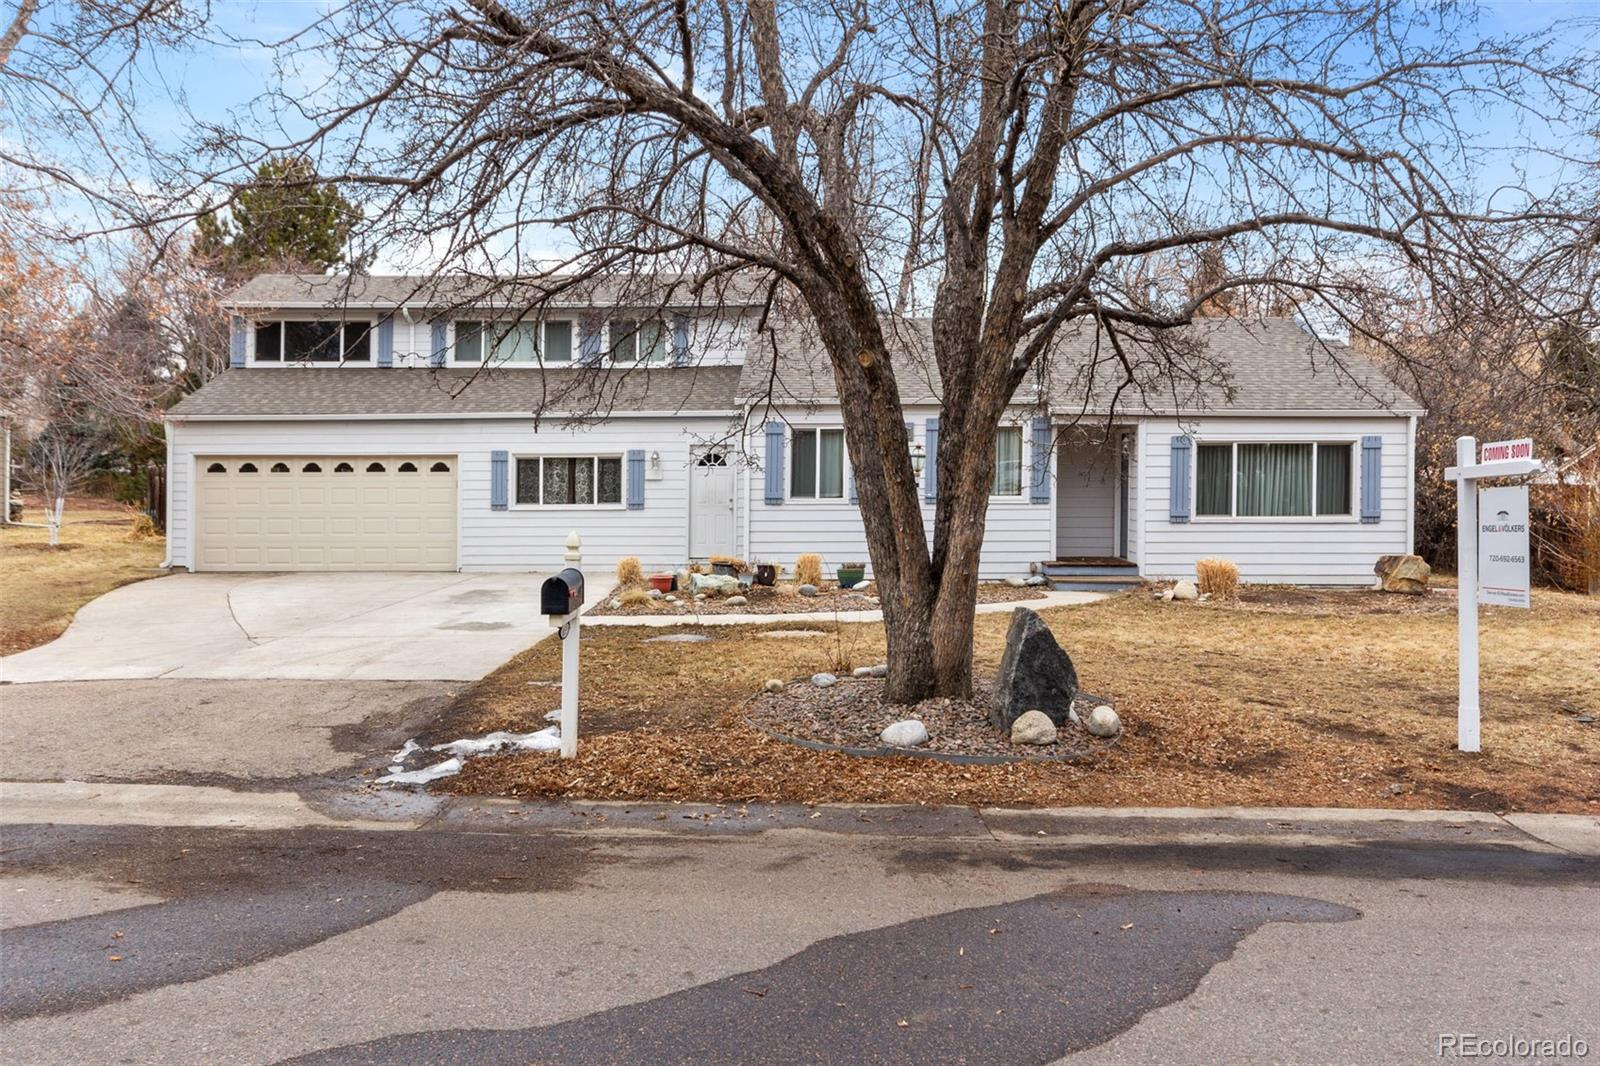 8155 W 24th Place, Lakewood, CO 80214 - #: 2879473